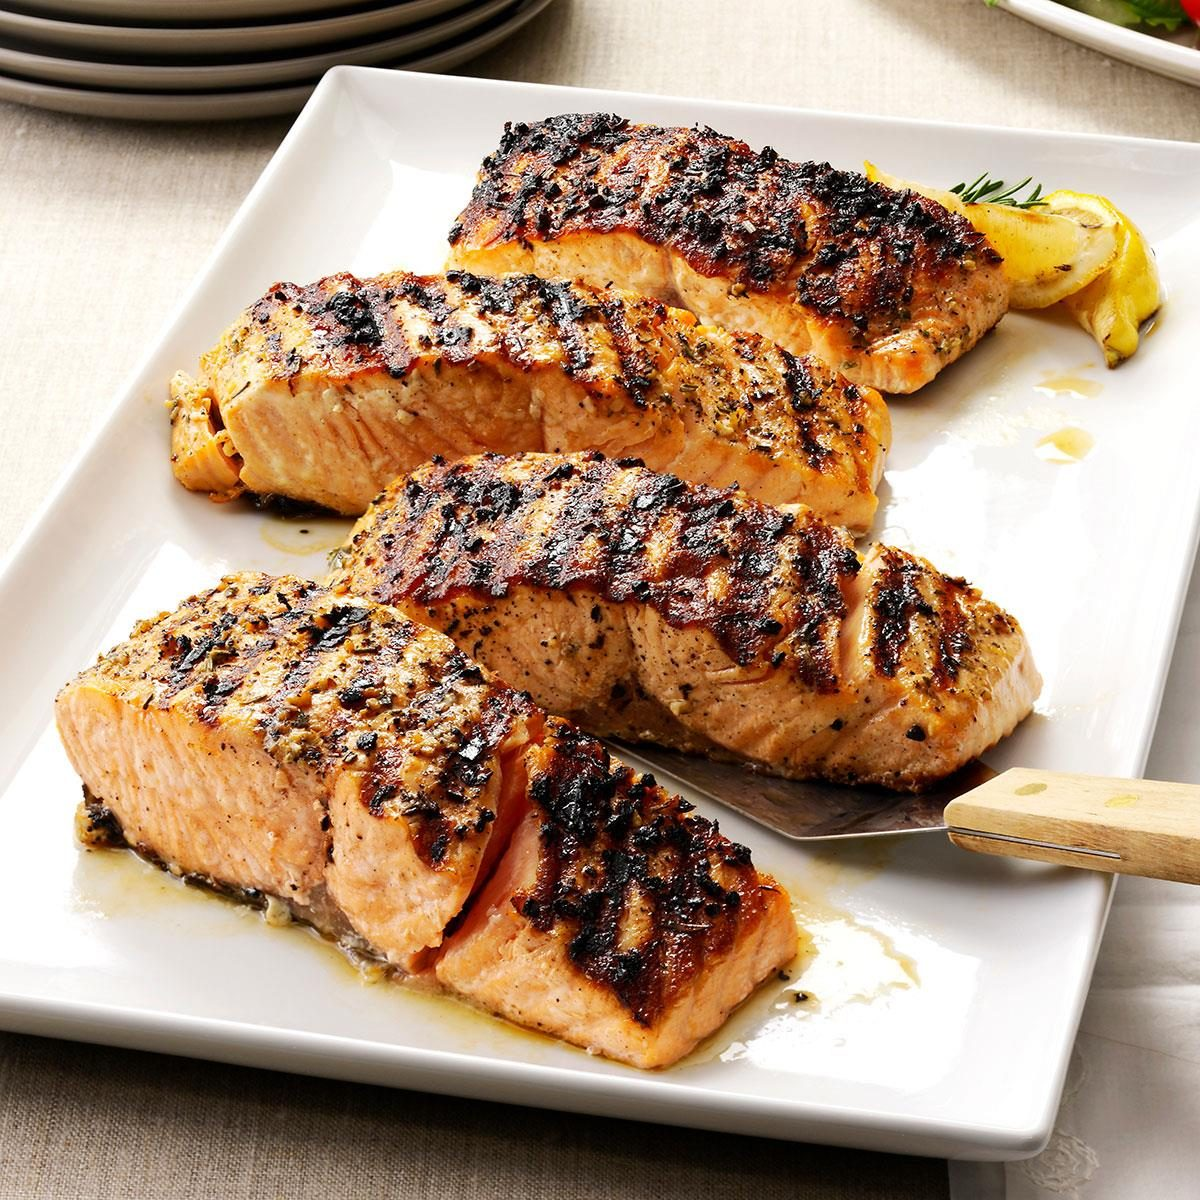 Grilled salmon on a plate with lemon.